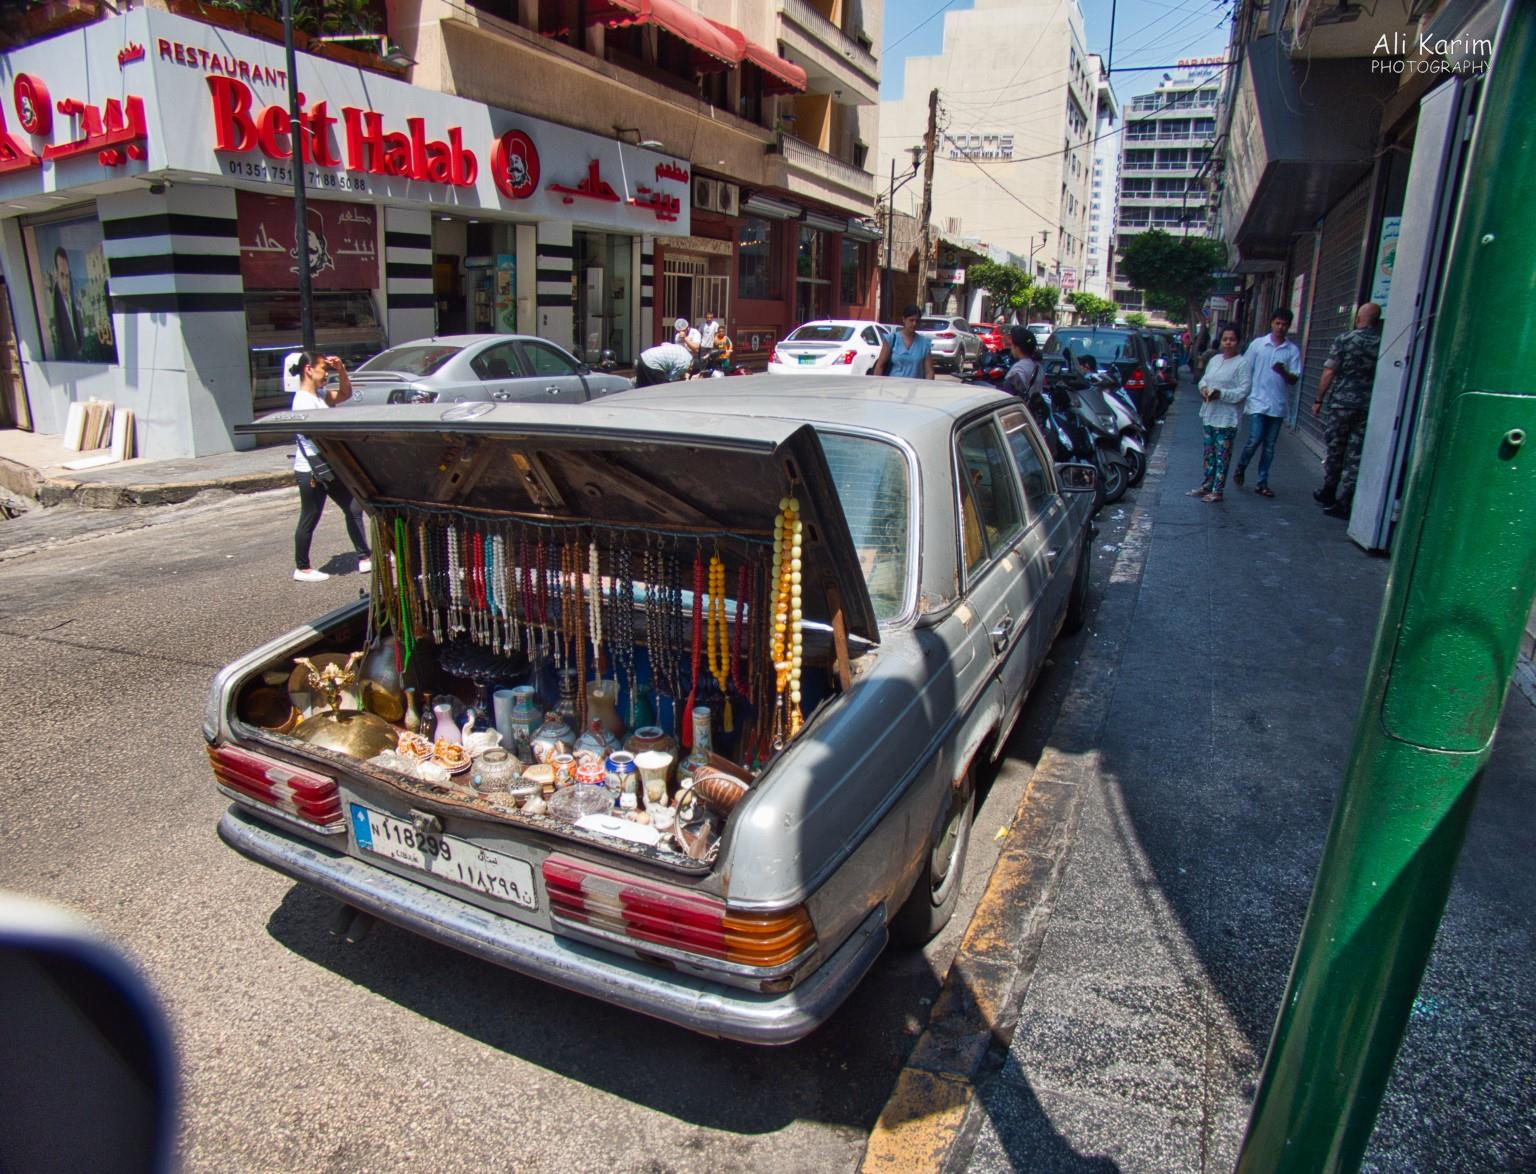 Beirut Mobile store